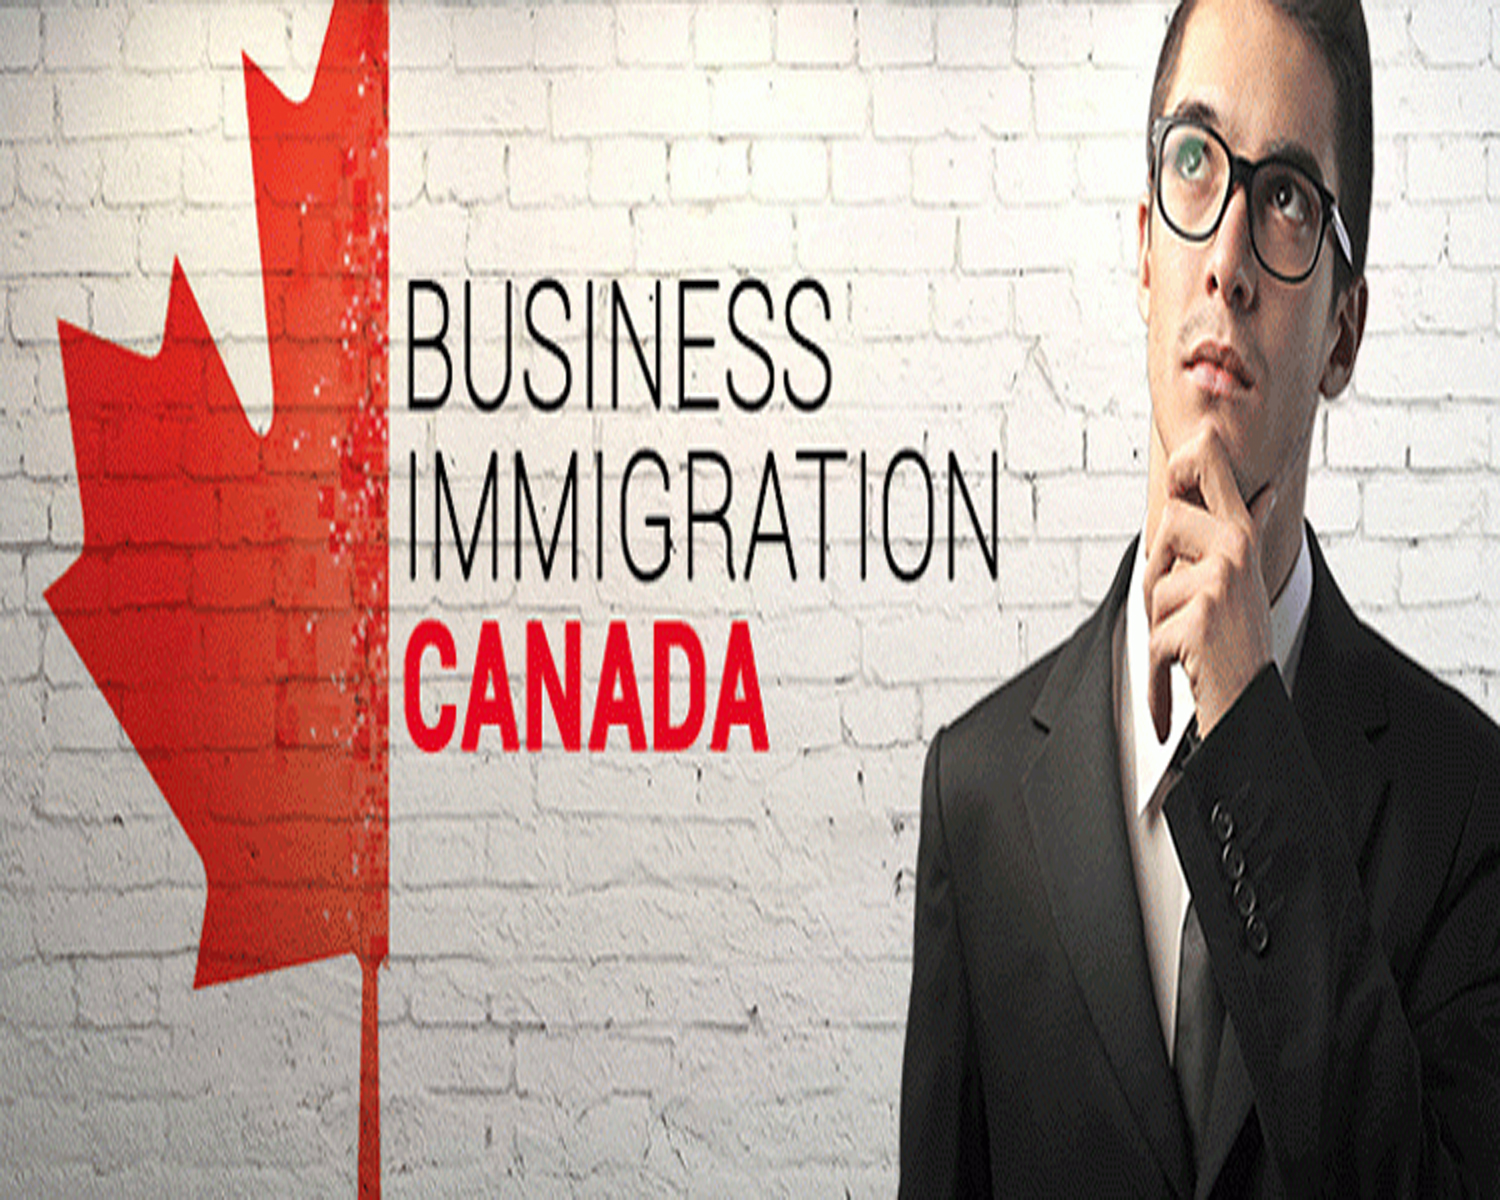 Canadian Business Immigration Program